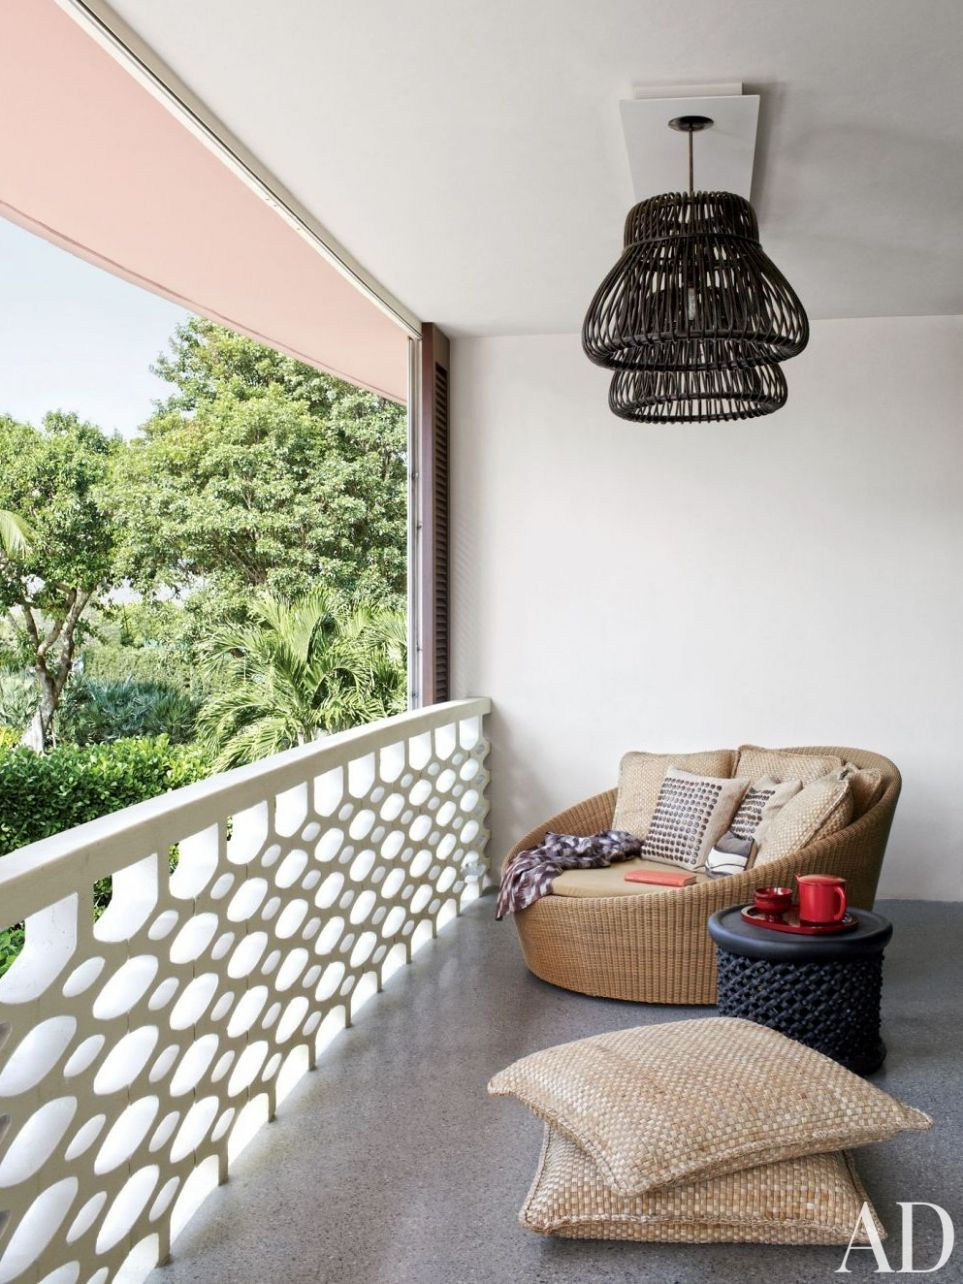 9 Cozy Balcony Ideas and Decor Inspiration | Architectural Digest - balcony ideas for home